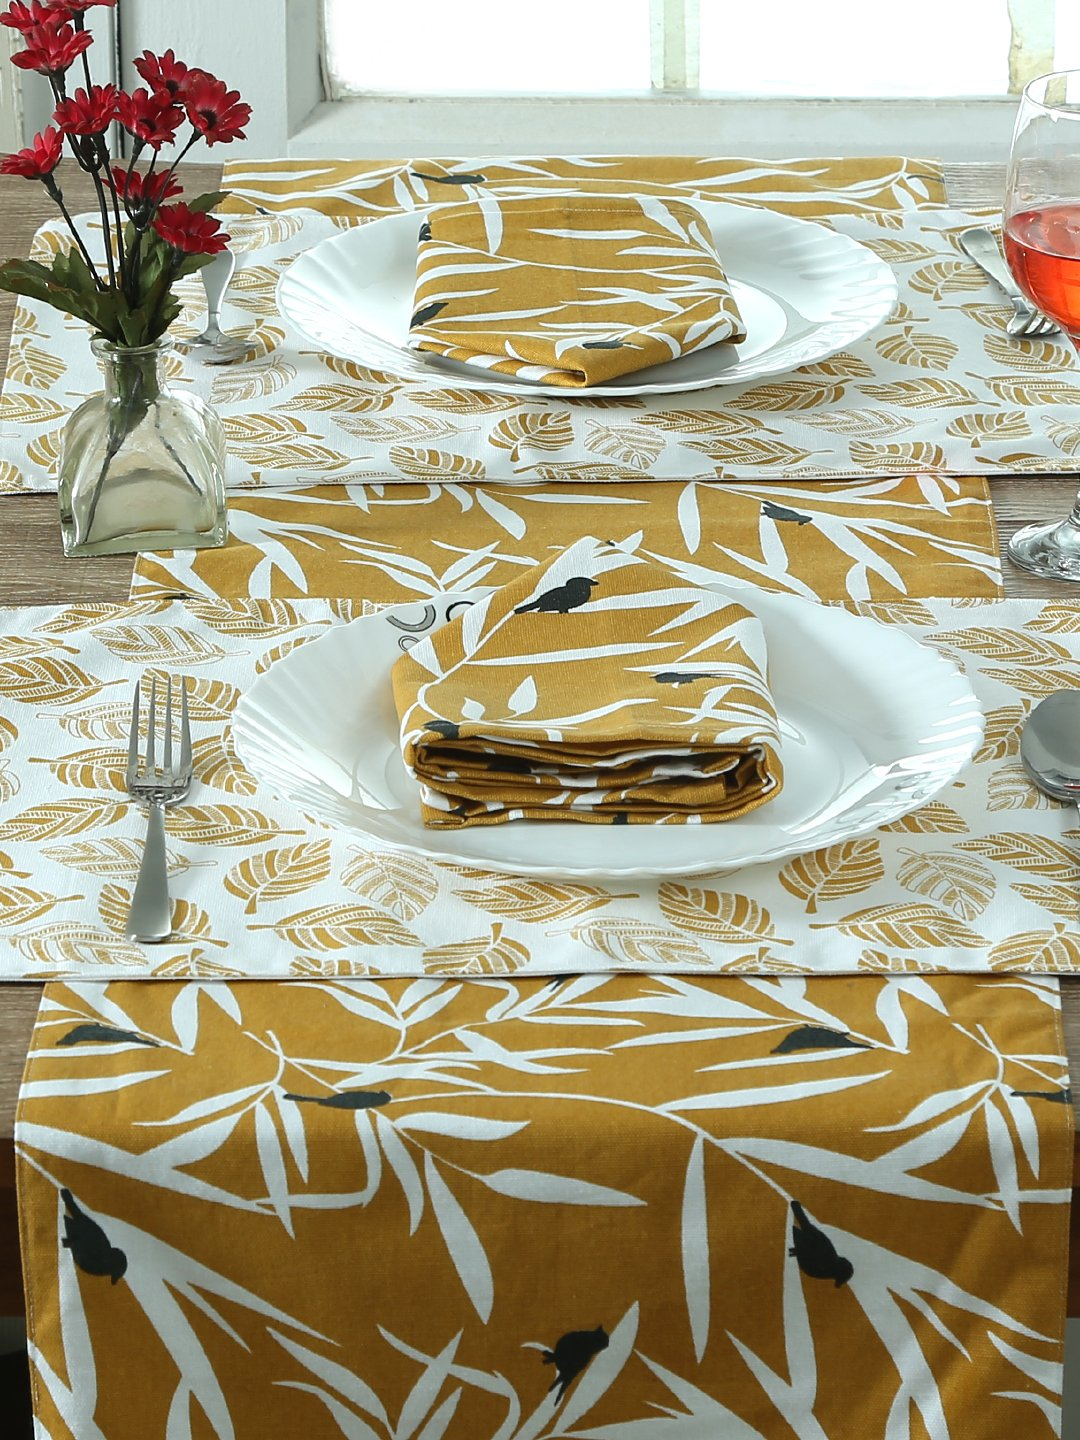 Handcrafted Ocre Bequest Set of Table Linen (13 Pcs)